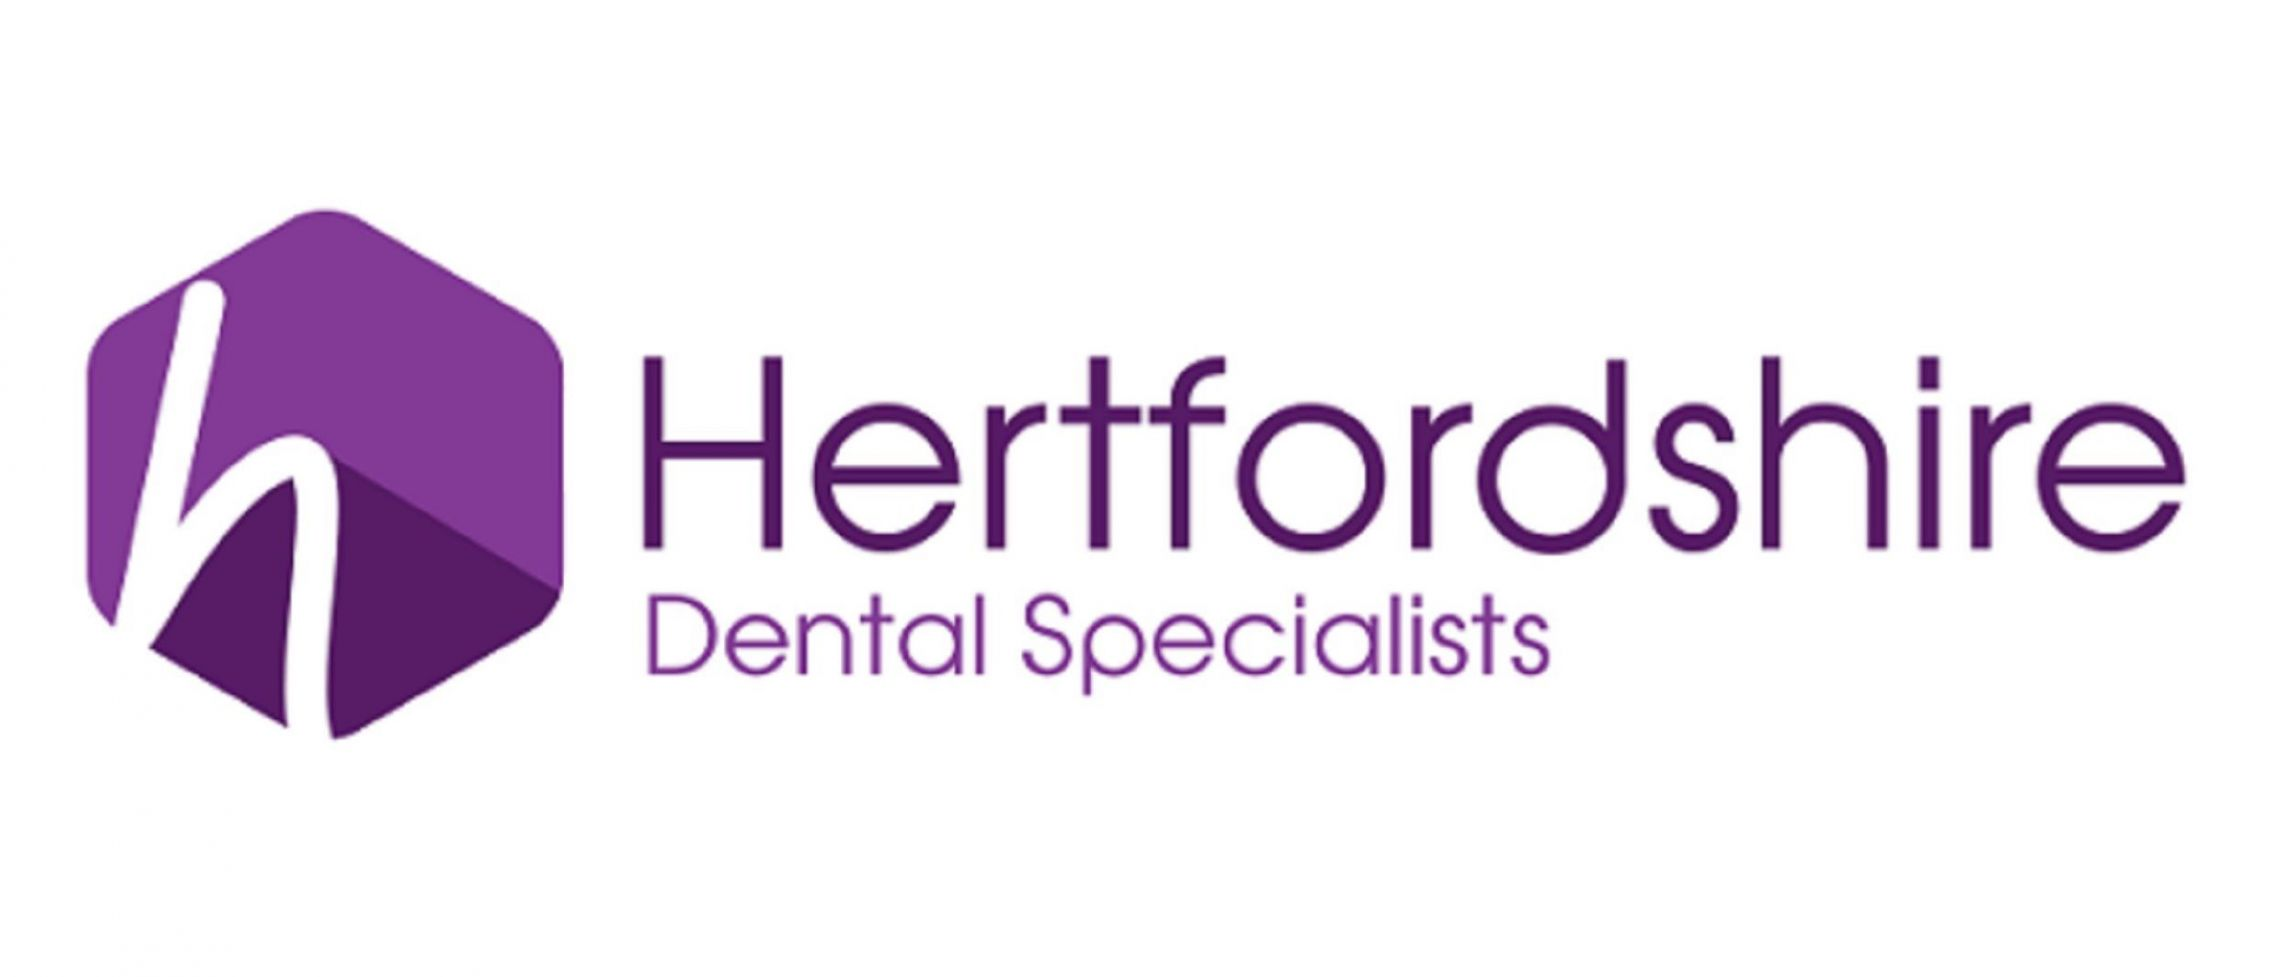 Hertfordshire Dental Specialists